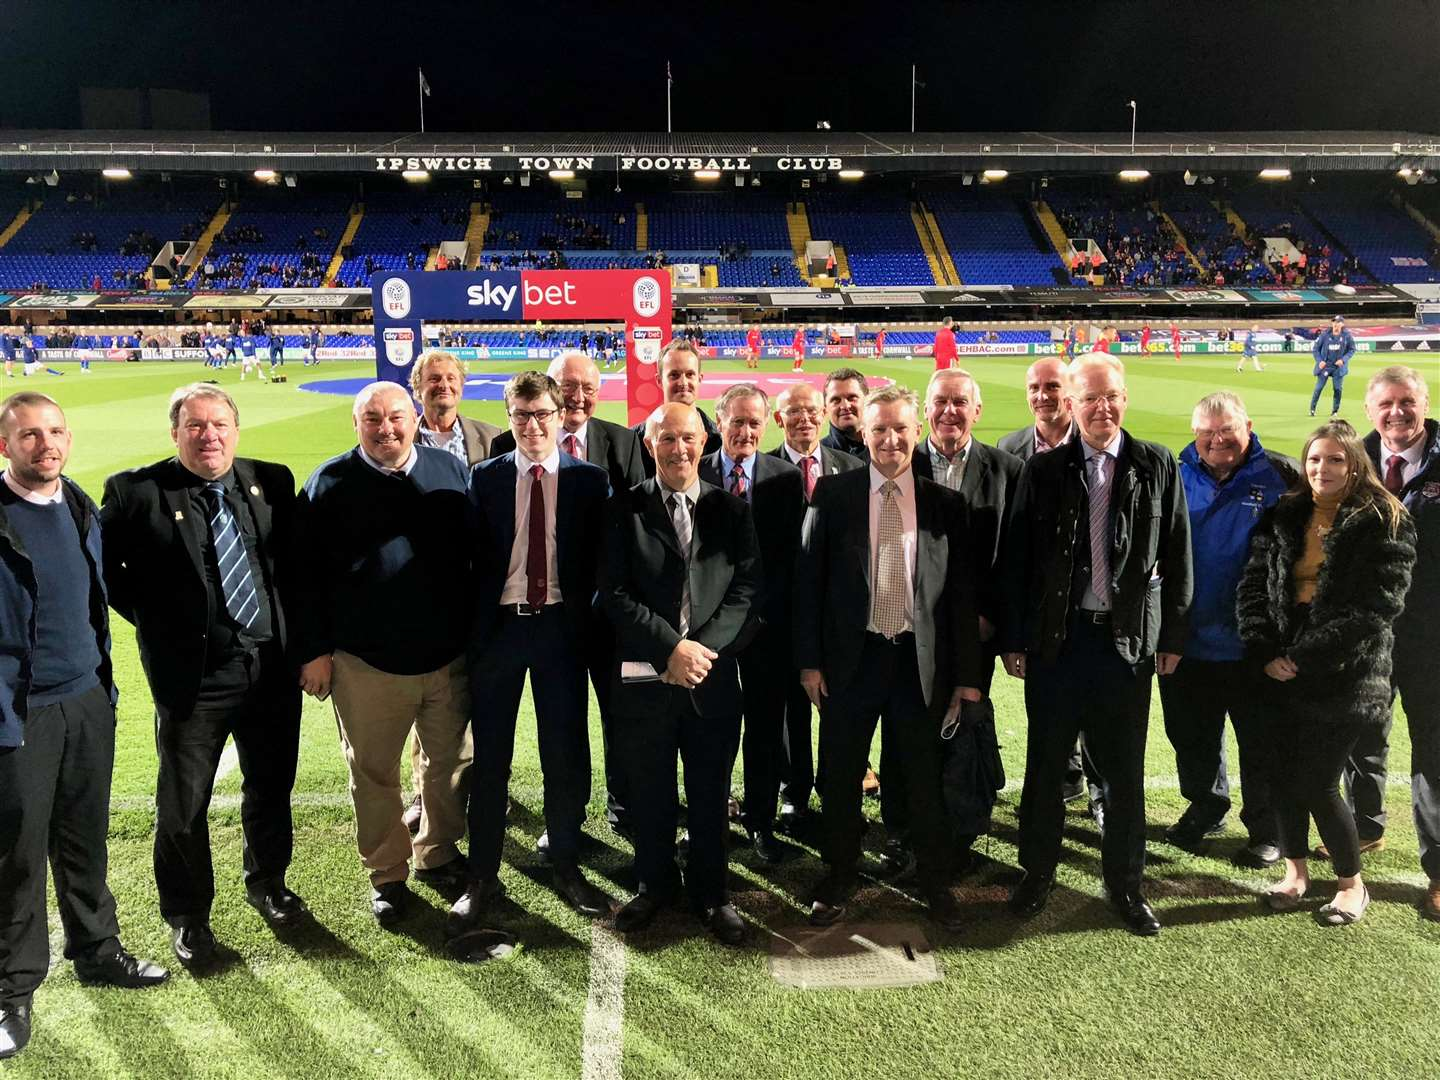 Suffolk FA Awards winners 2018 – Awards winners pictured on the pitch at Portman Road before the Ipswich versus Middlesbrough match Picture: Suffolk FA (4662952)